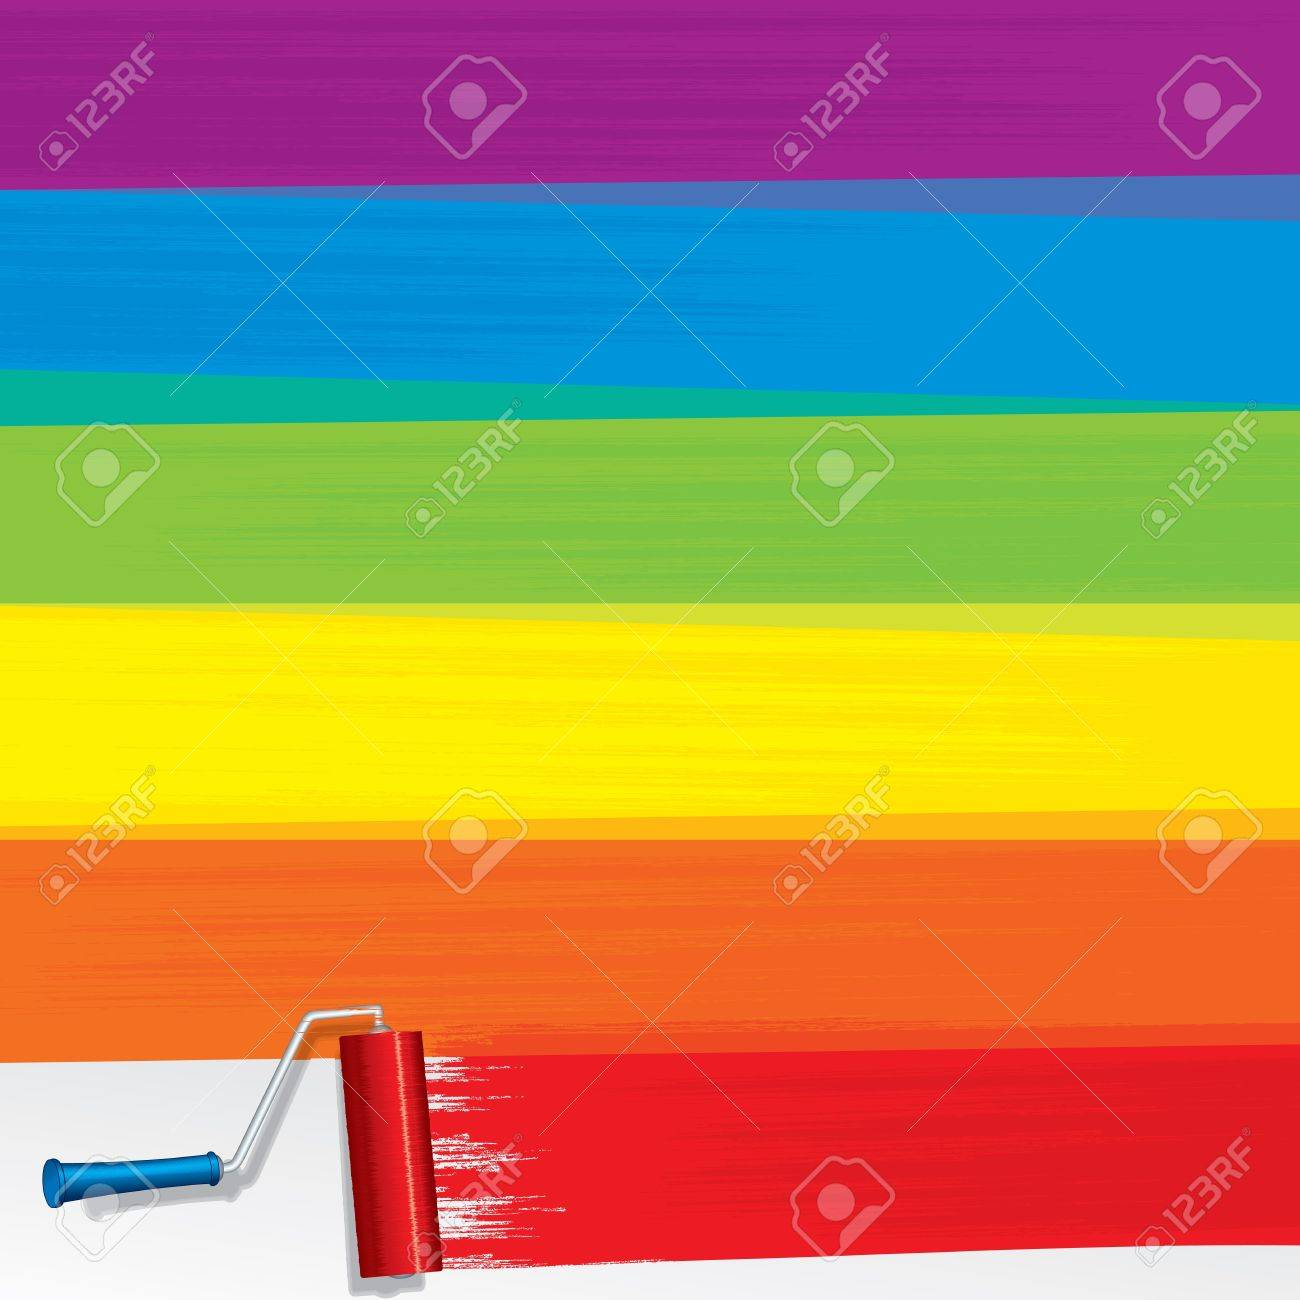 Rainbow Paint Roller Painting A White Wall Stock Photo, Picture And ...